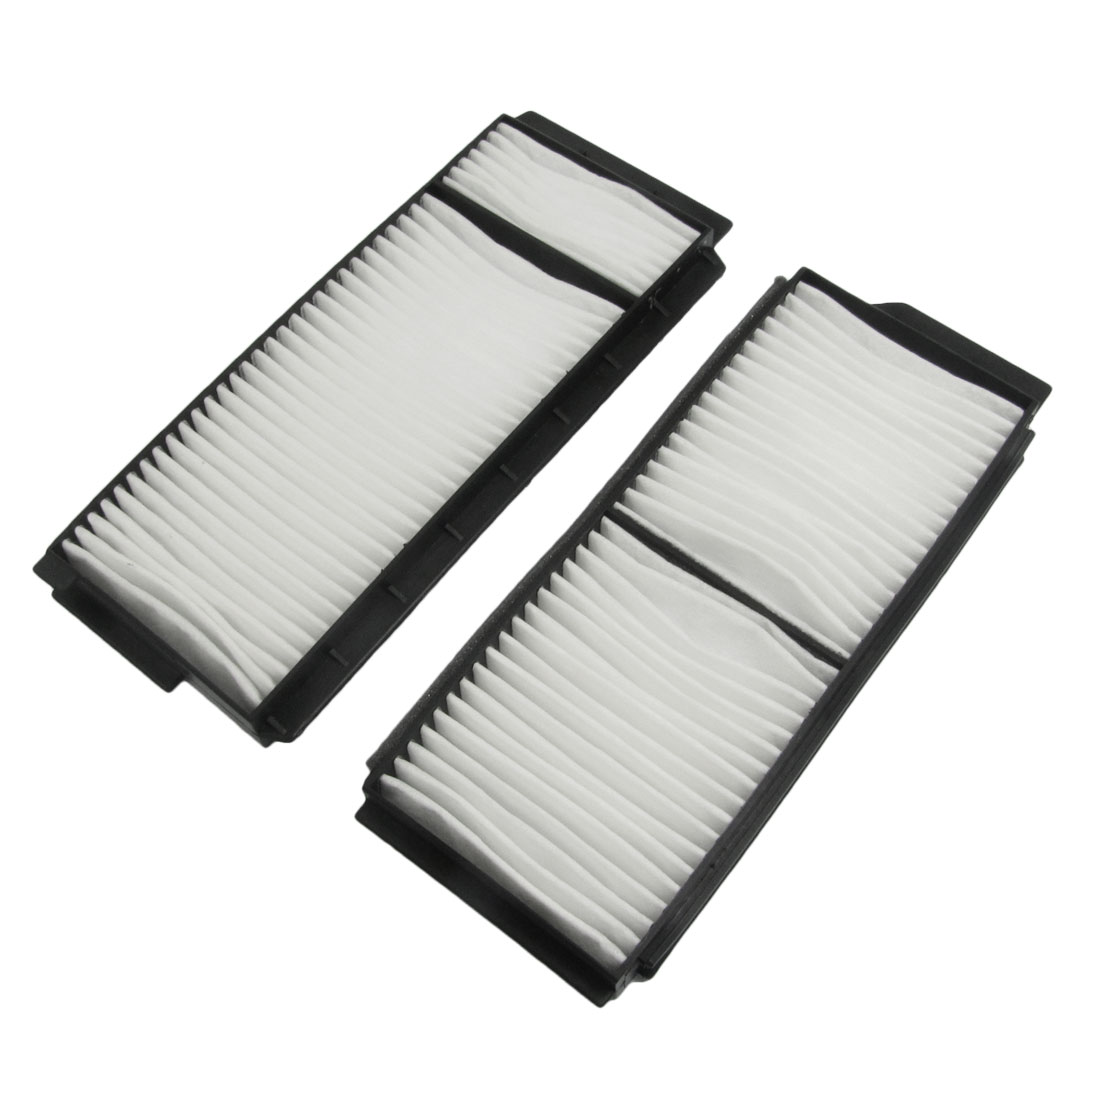 White Black Non Woven Cotton A/C Cabin Air Filter Set for Mazda 3